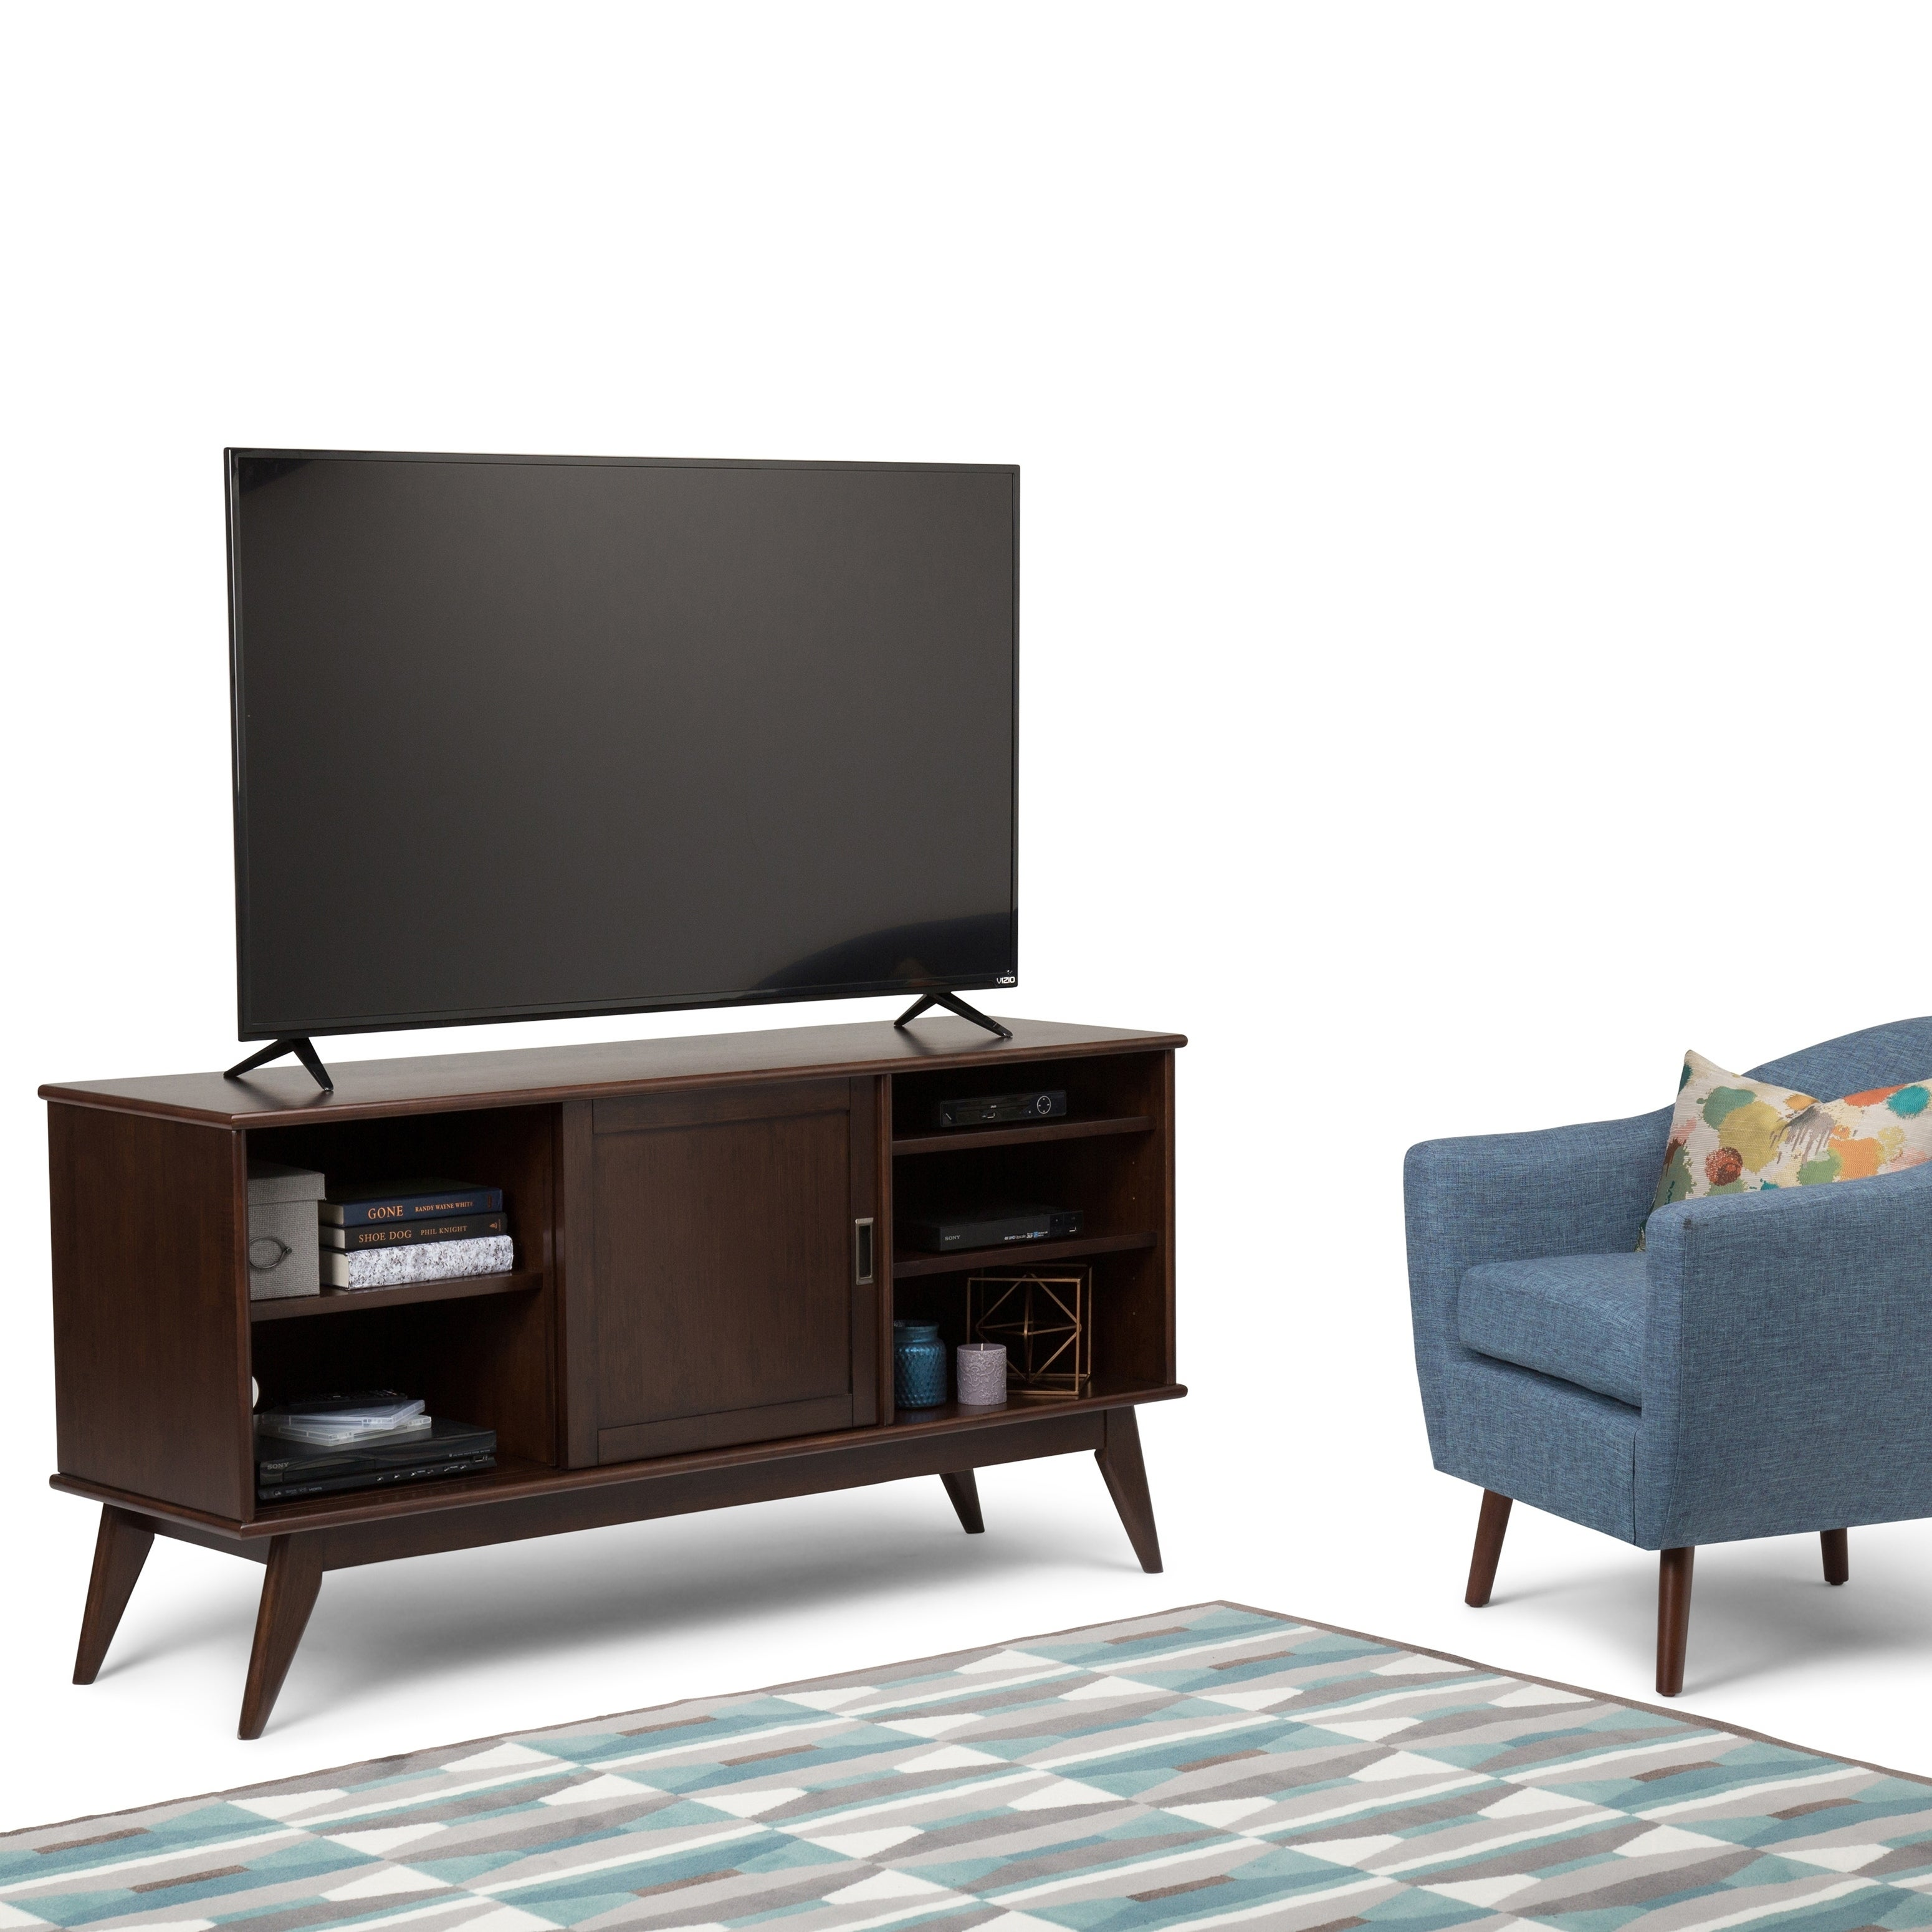 Shop Wyndenhall Tierney Solid Hardwood 60 Inch Wide Mid Century Modern Tv Media Stand For Tvs Up To 65 Inches 60 W X 18 D X 30 H Overstock 10993023